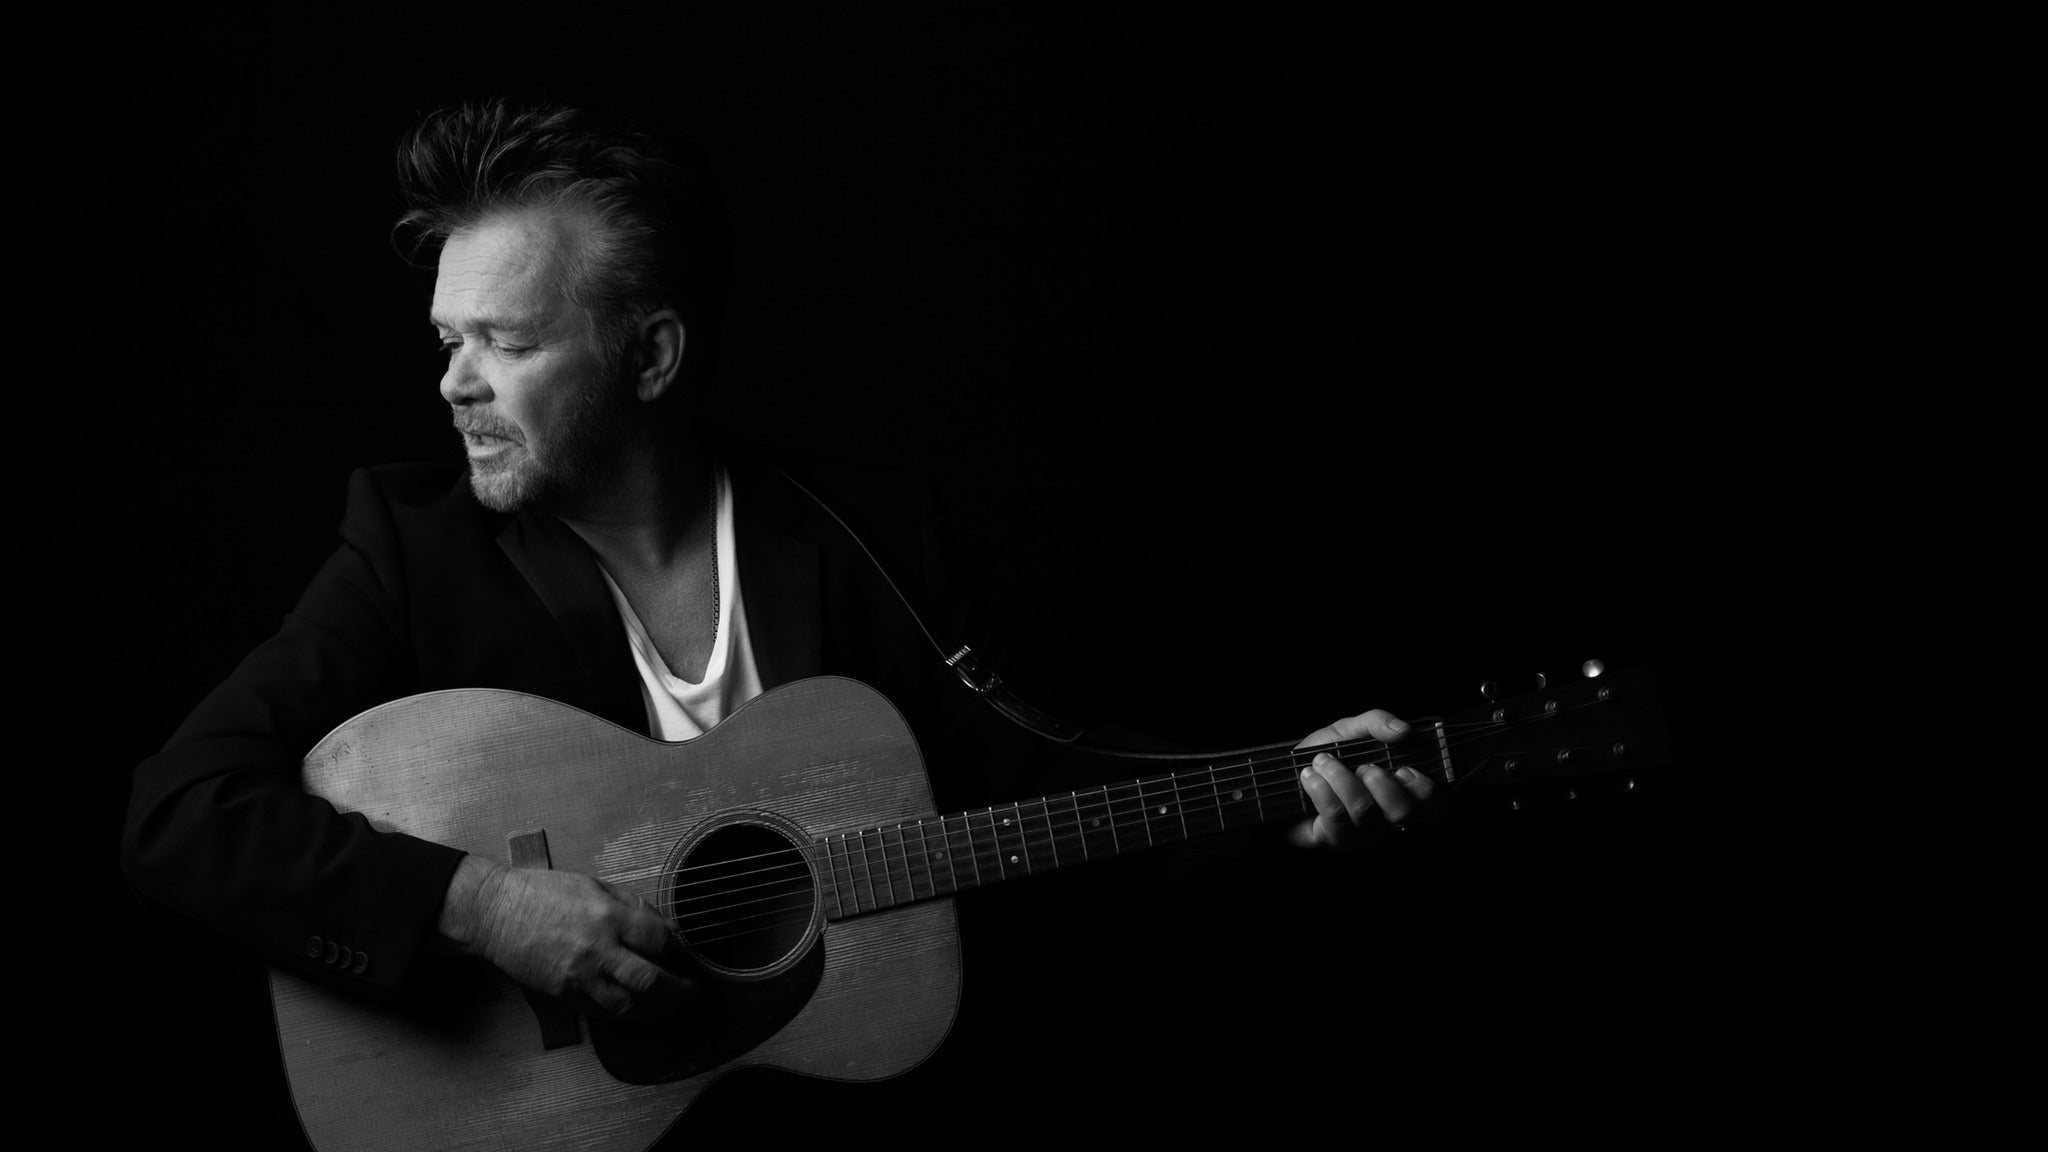 John Mellencamp at Morris Performing Arts Center - South Bend, IN 46601